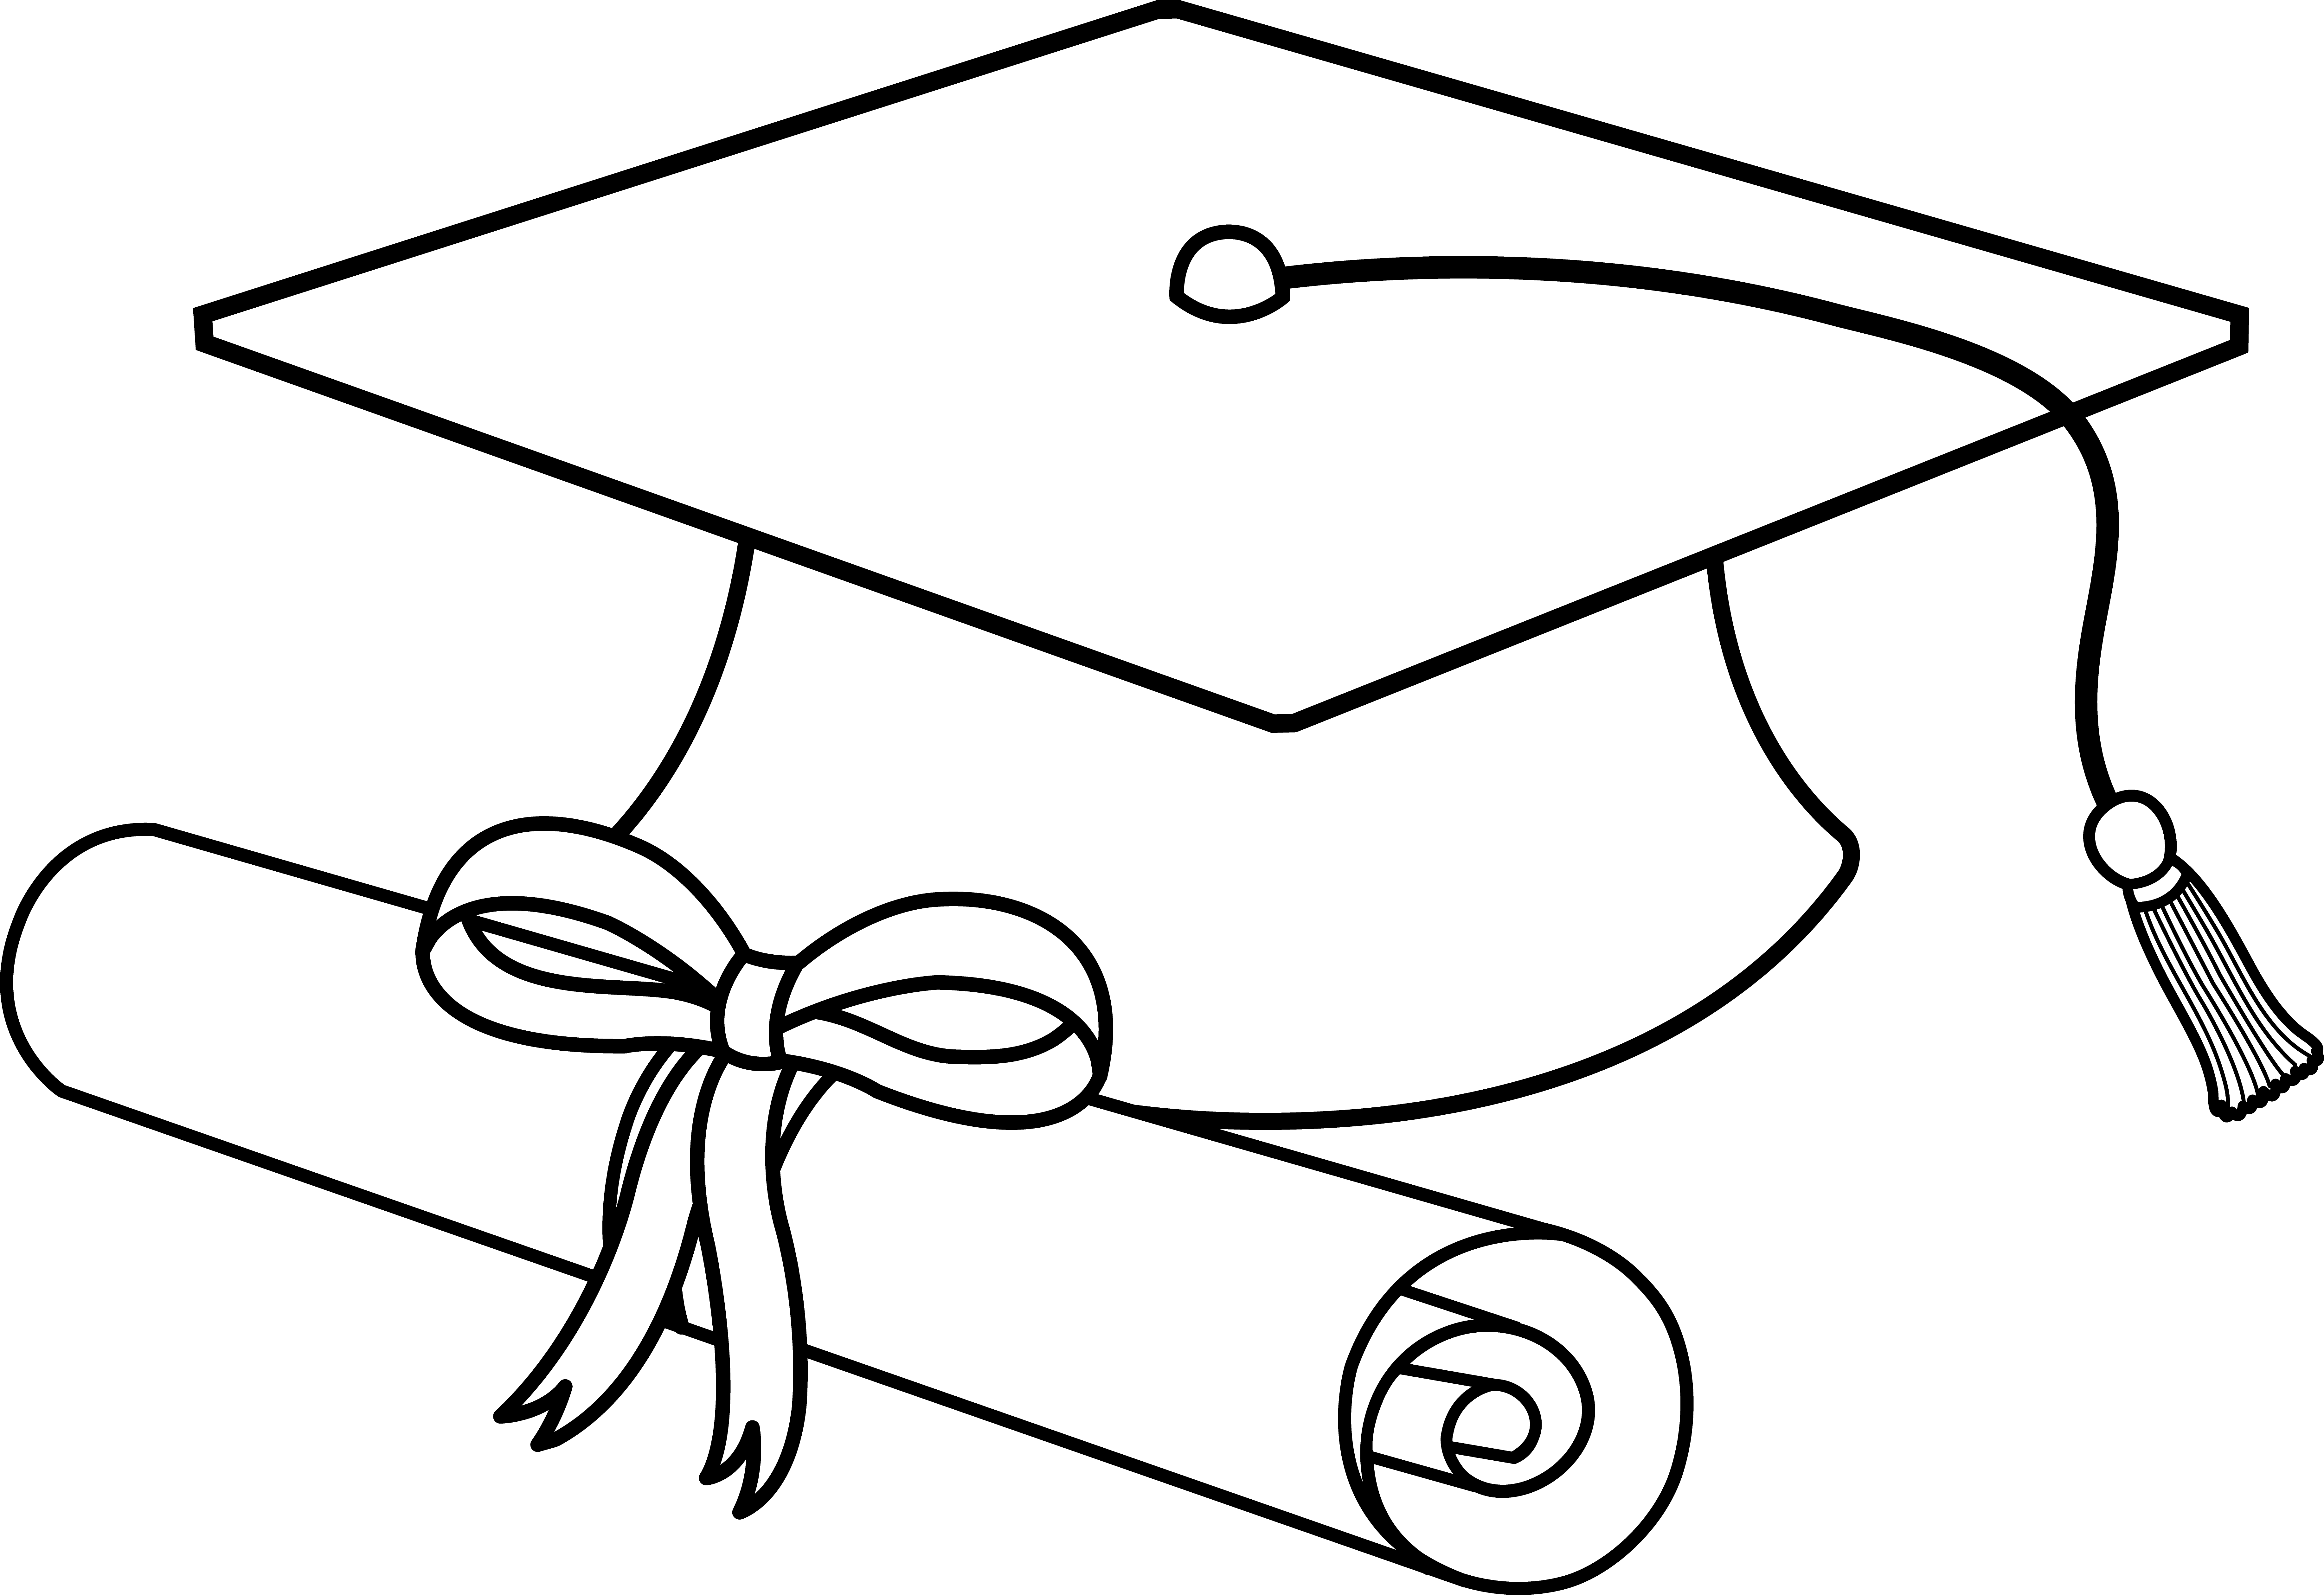 Gown clipart graduation toga Cliparting Graduation gown cap cap